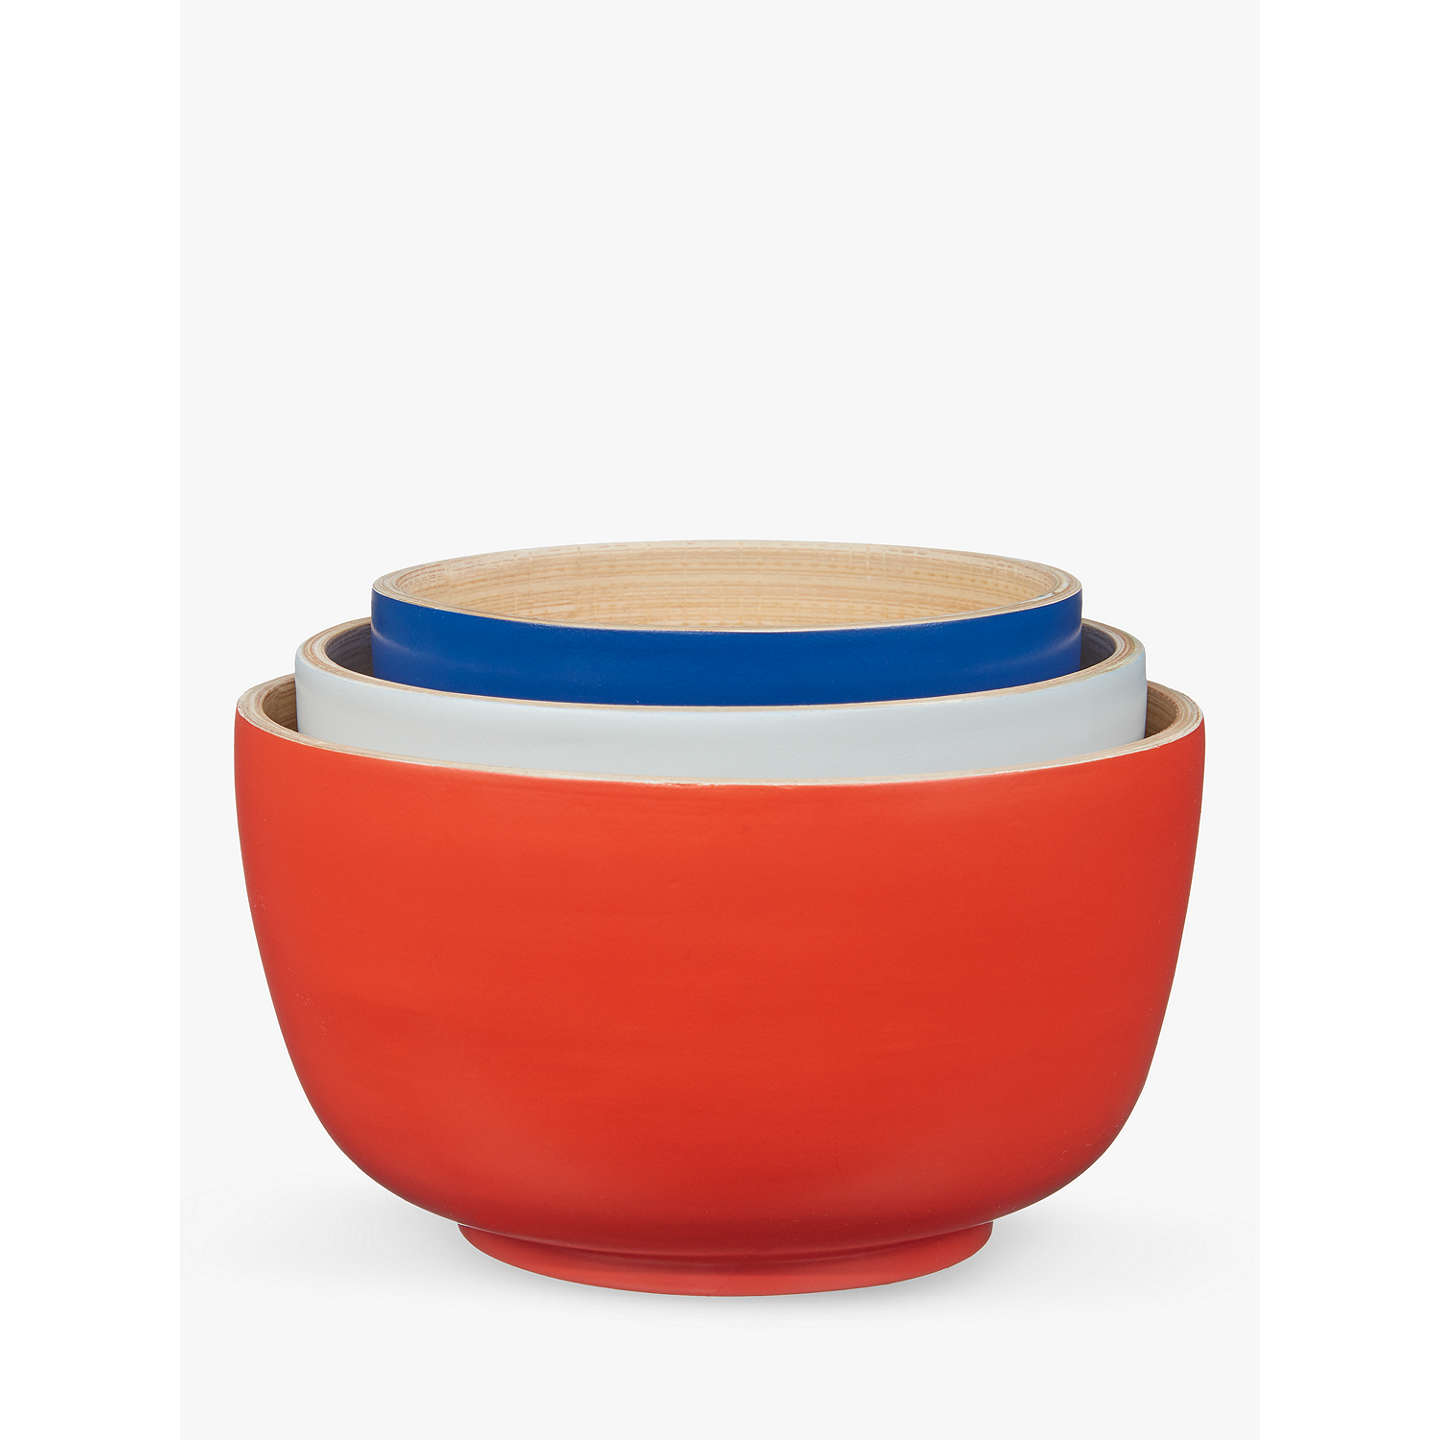 House by john lewis nesting bamboo bowls assorted set of 3 at buyhouse by john lewis nesting bamboo bowls assorted set of 3 online at johnlewis reviewsmspy